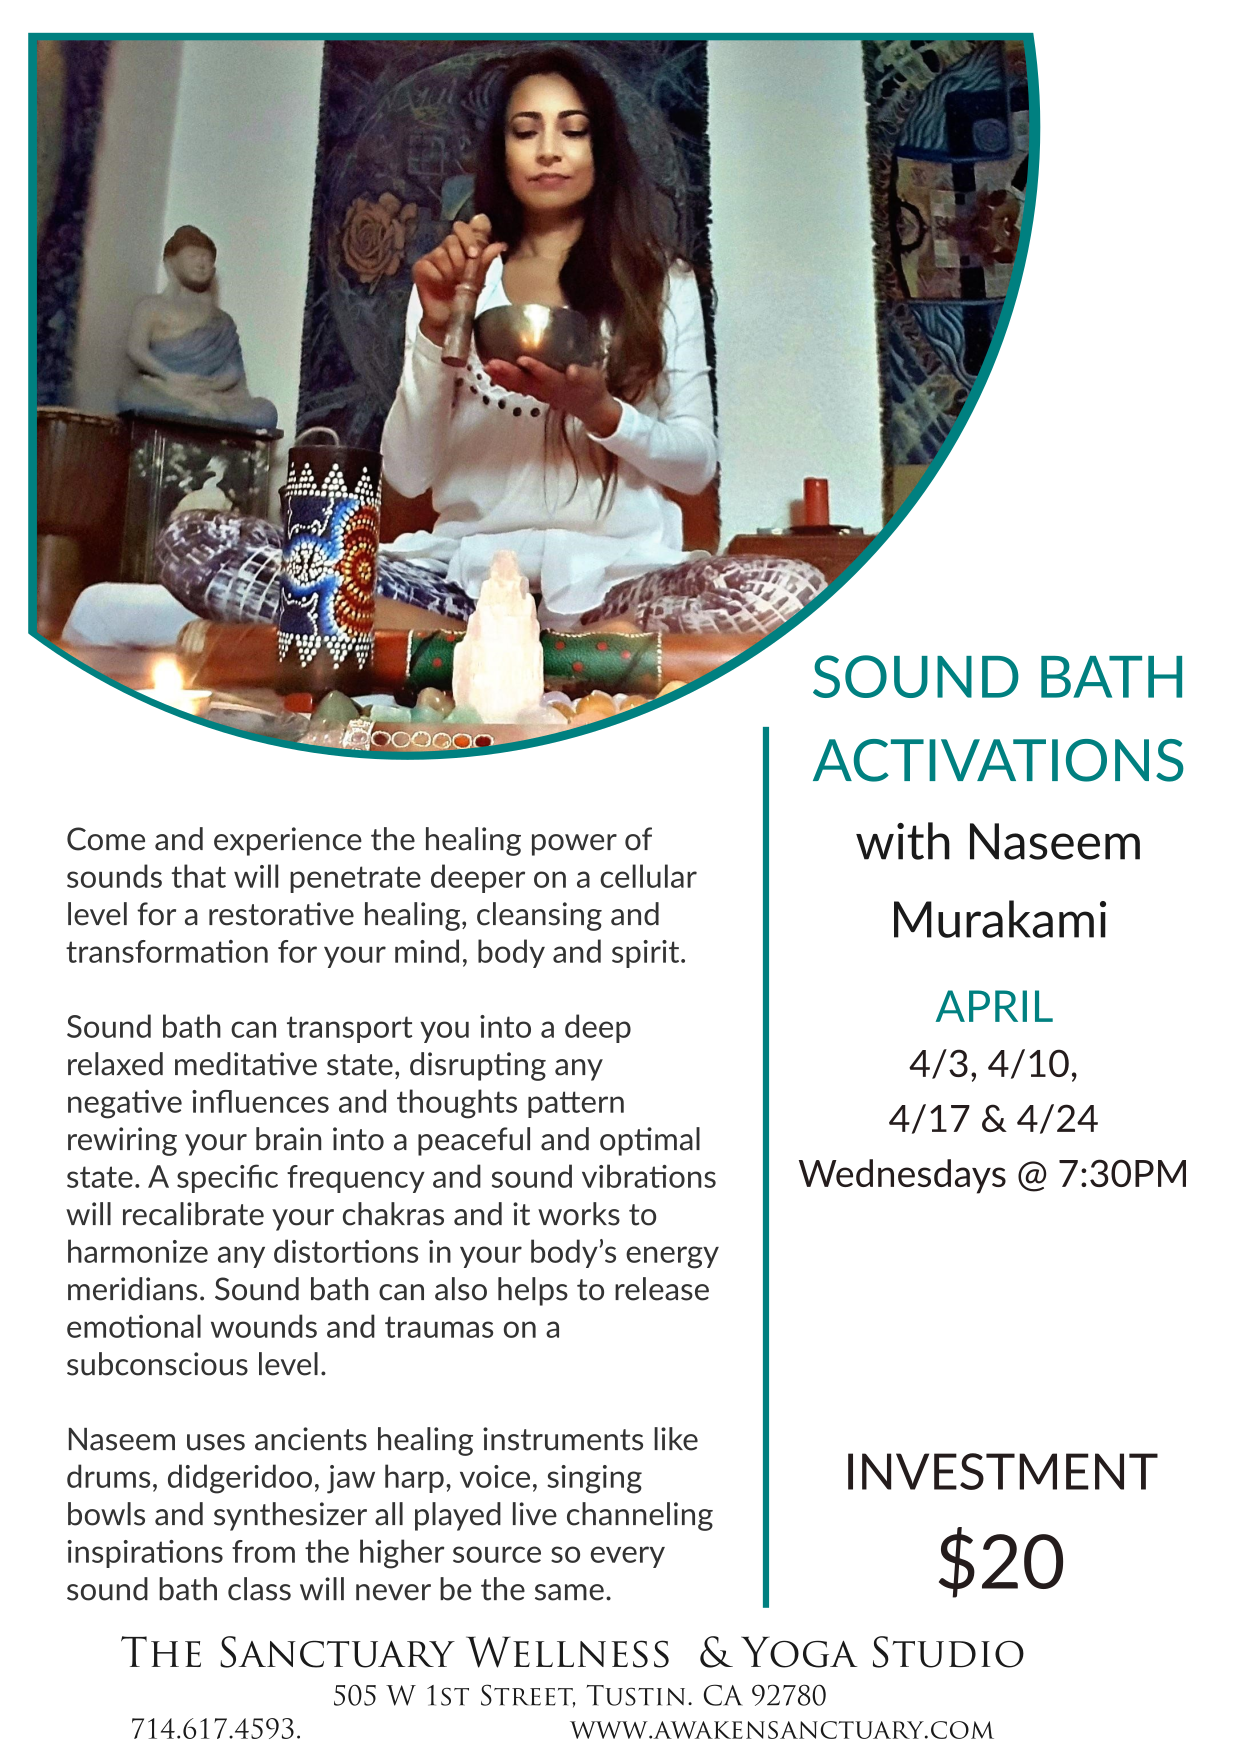 http://www.awakensanctuary.com/events_soundbath.html